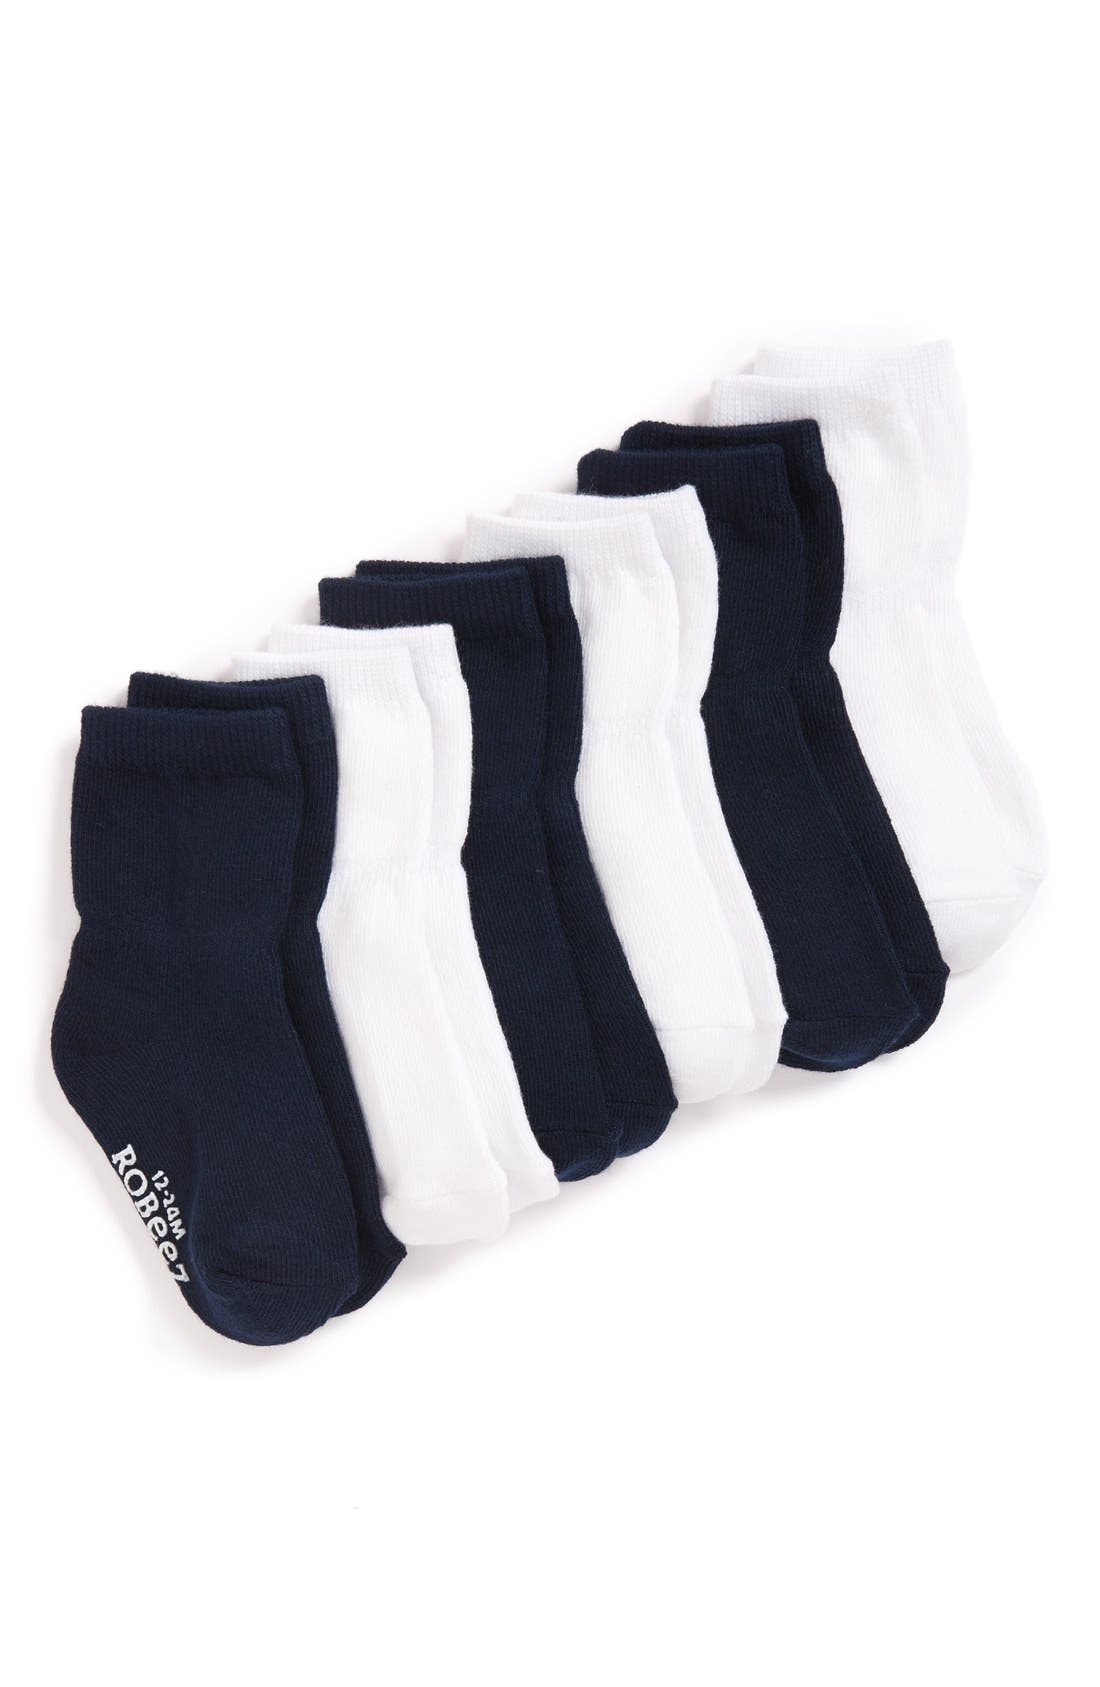 6-Pack Ankle Socks,                         Main,                         color, NAVY